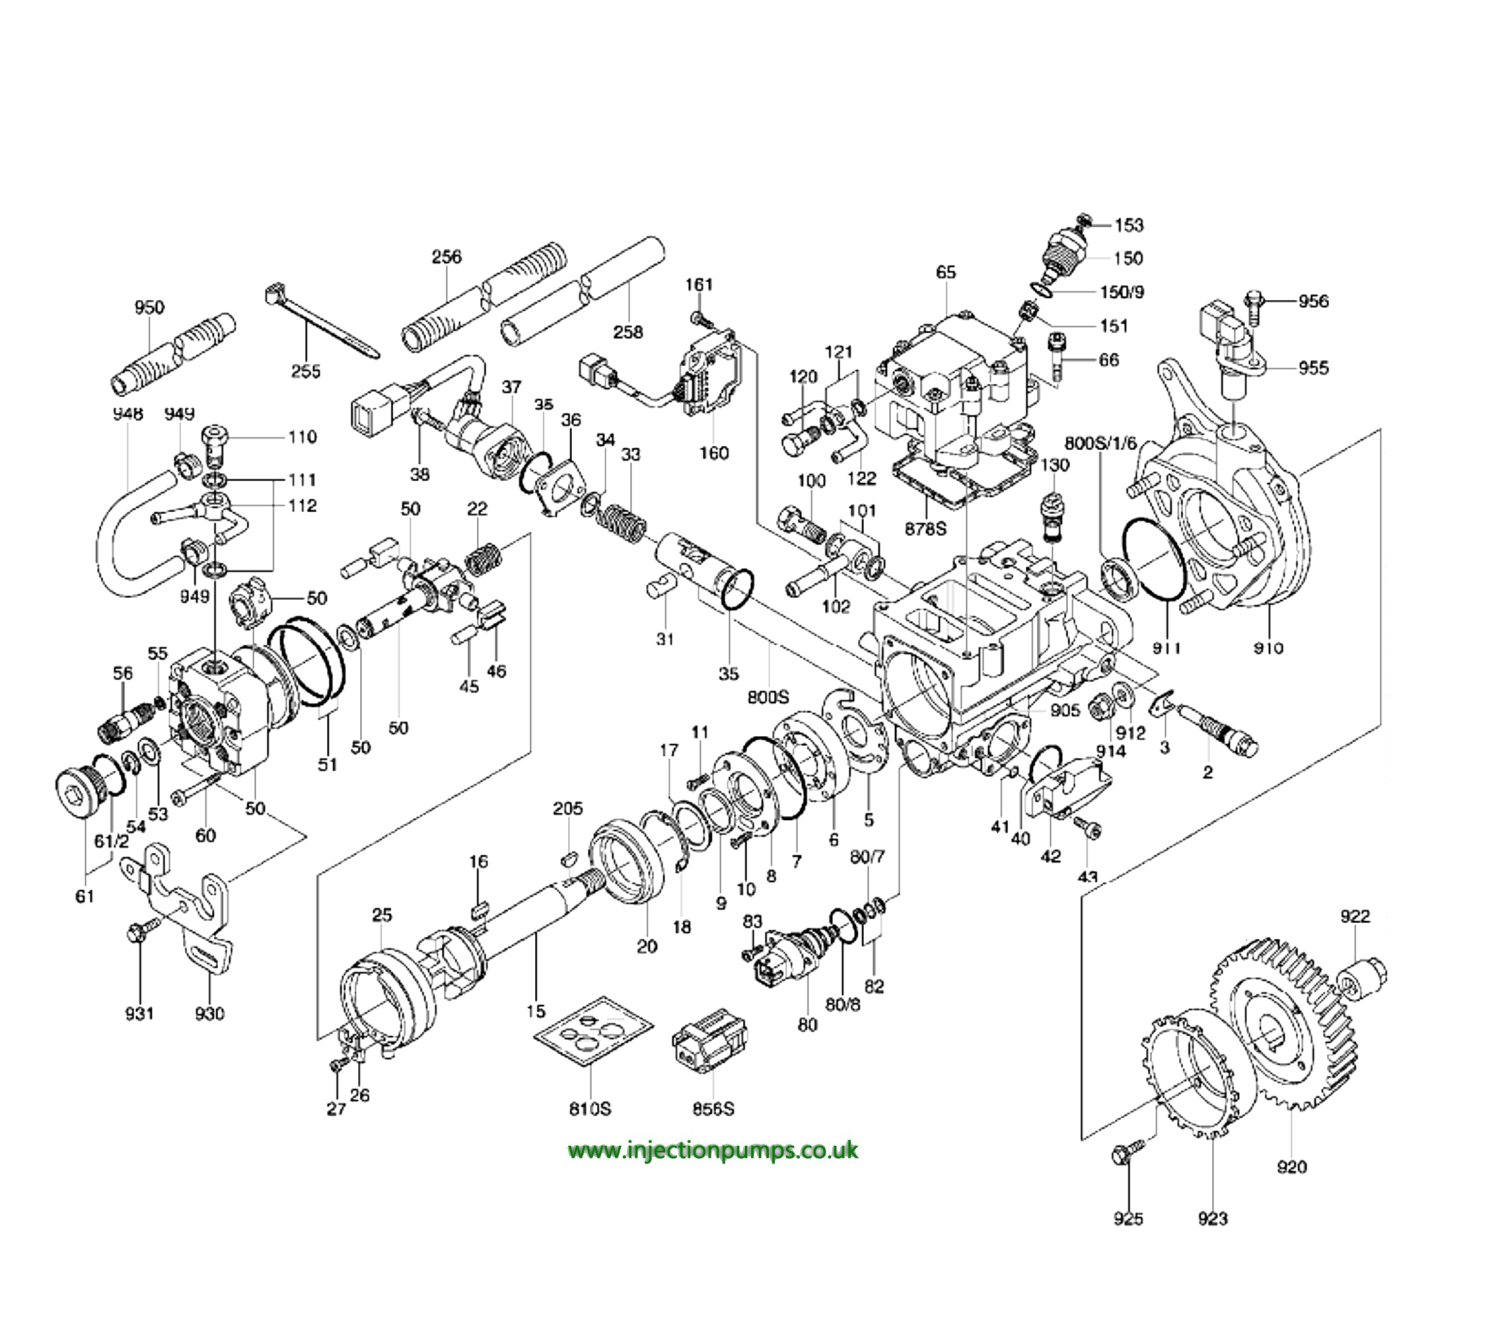 Isuzusel Injection Pump